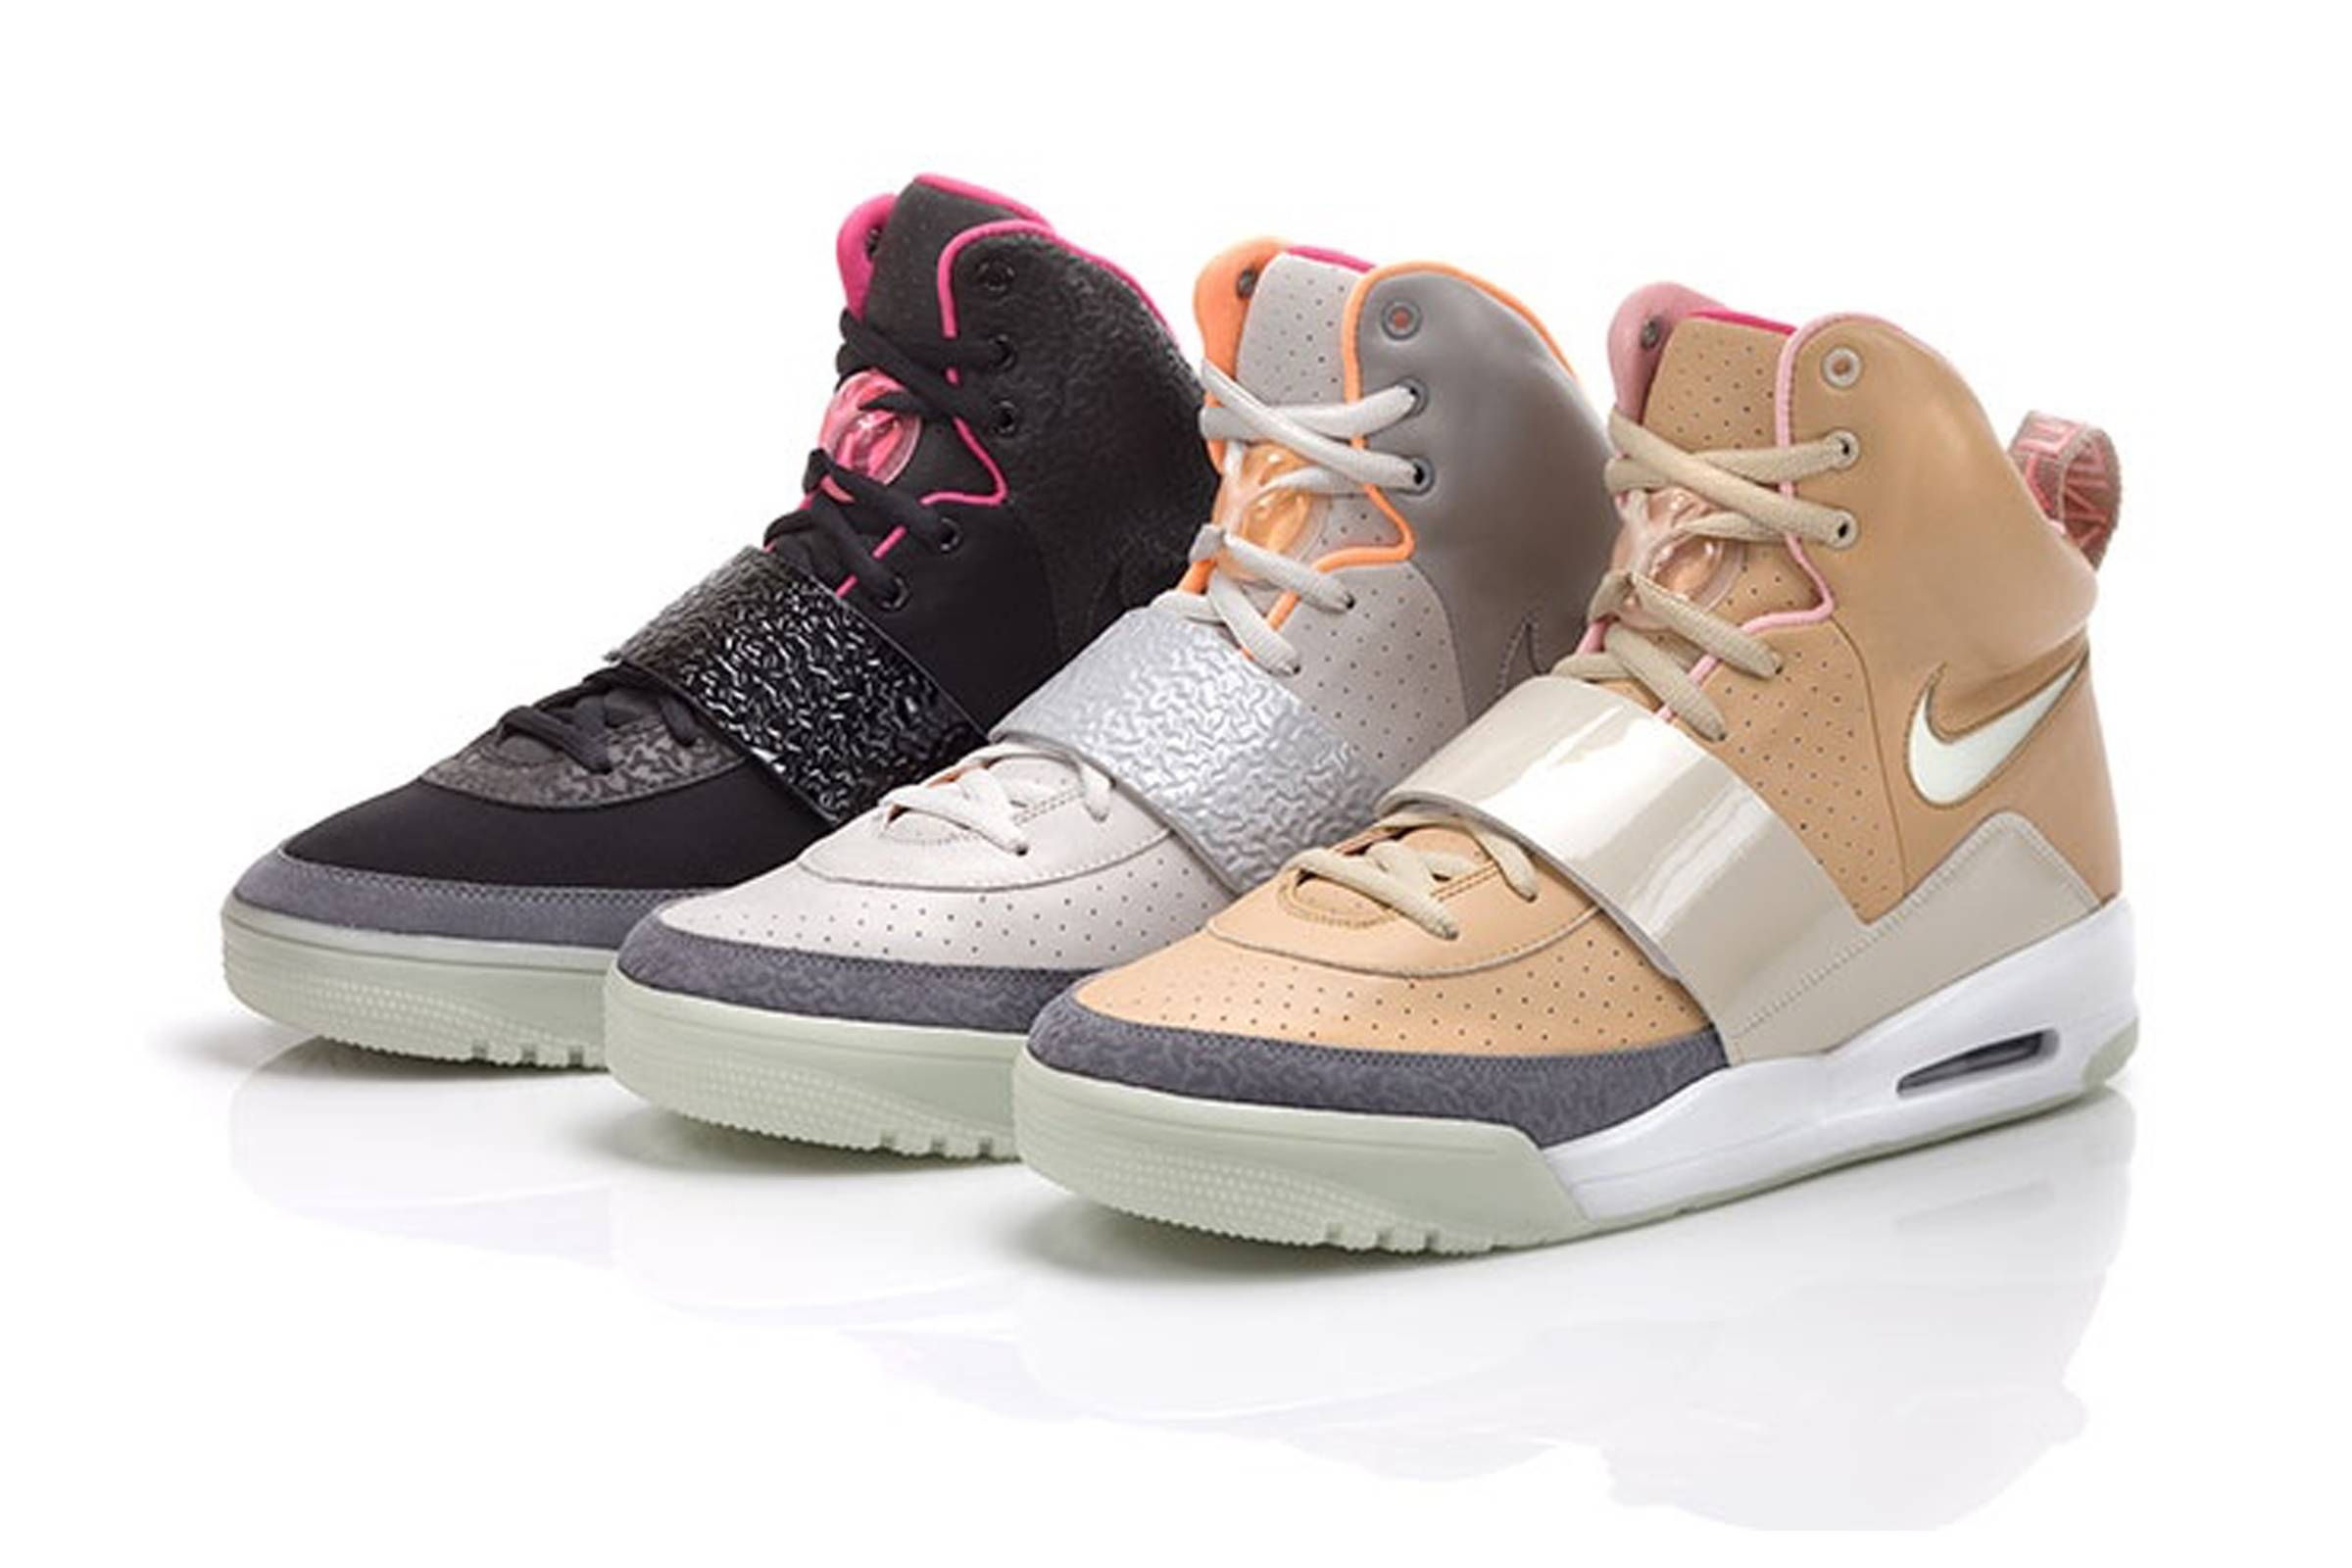 All three colorways of Nike's Air Yeezy I; (from left) Blink Black and Pink, Zen Grey and Net Tan